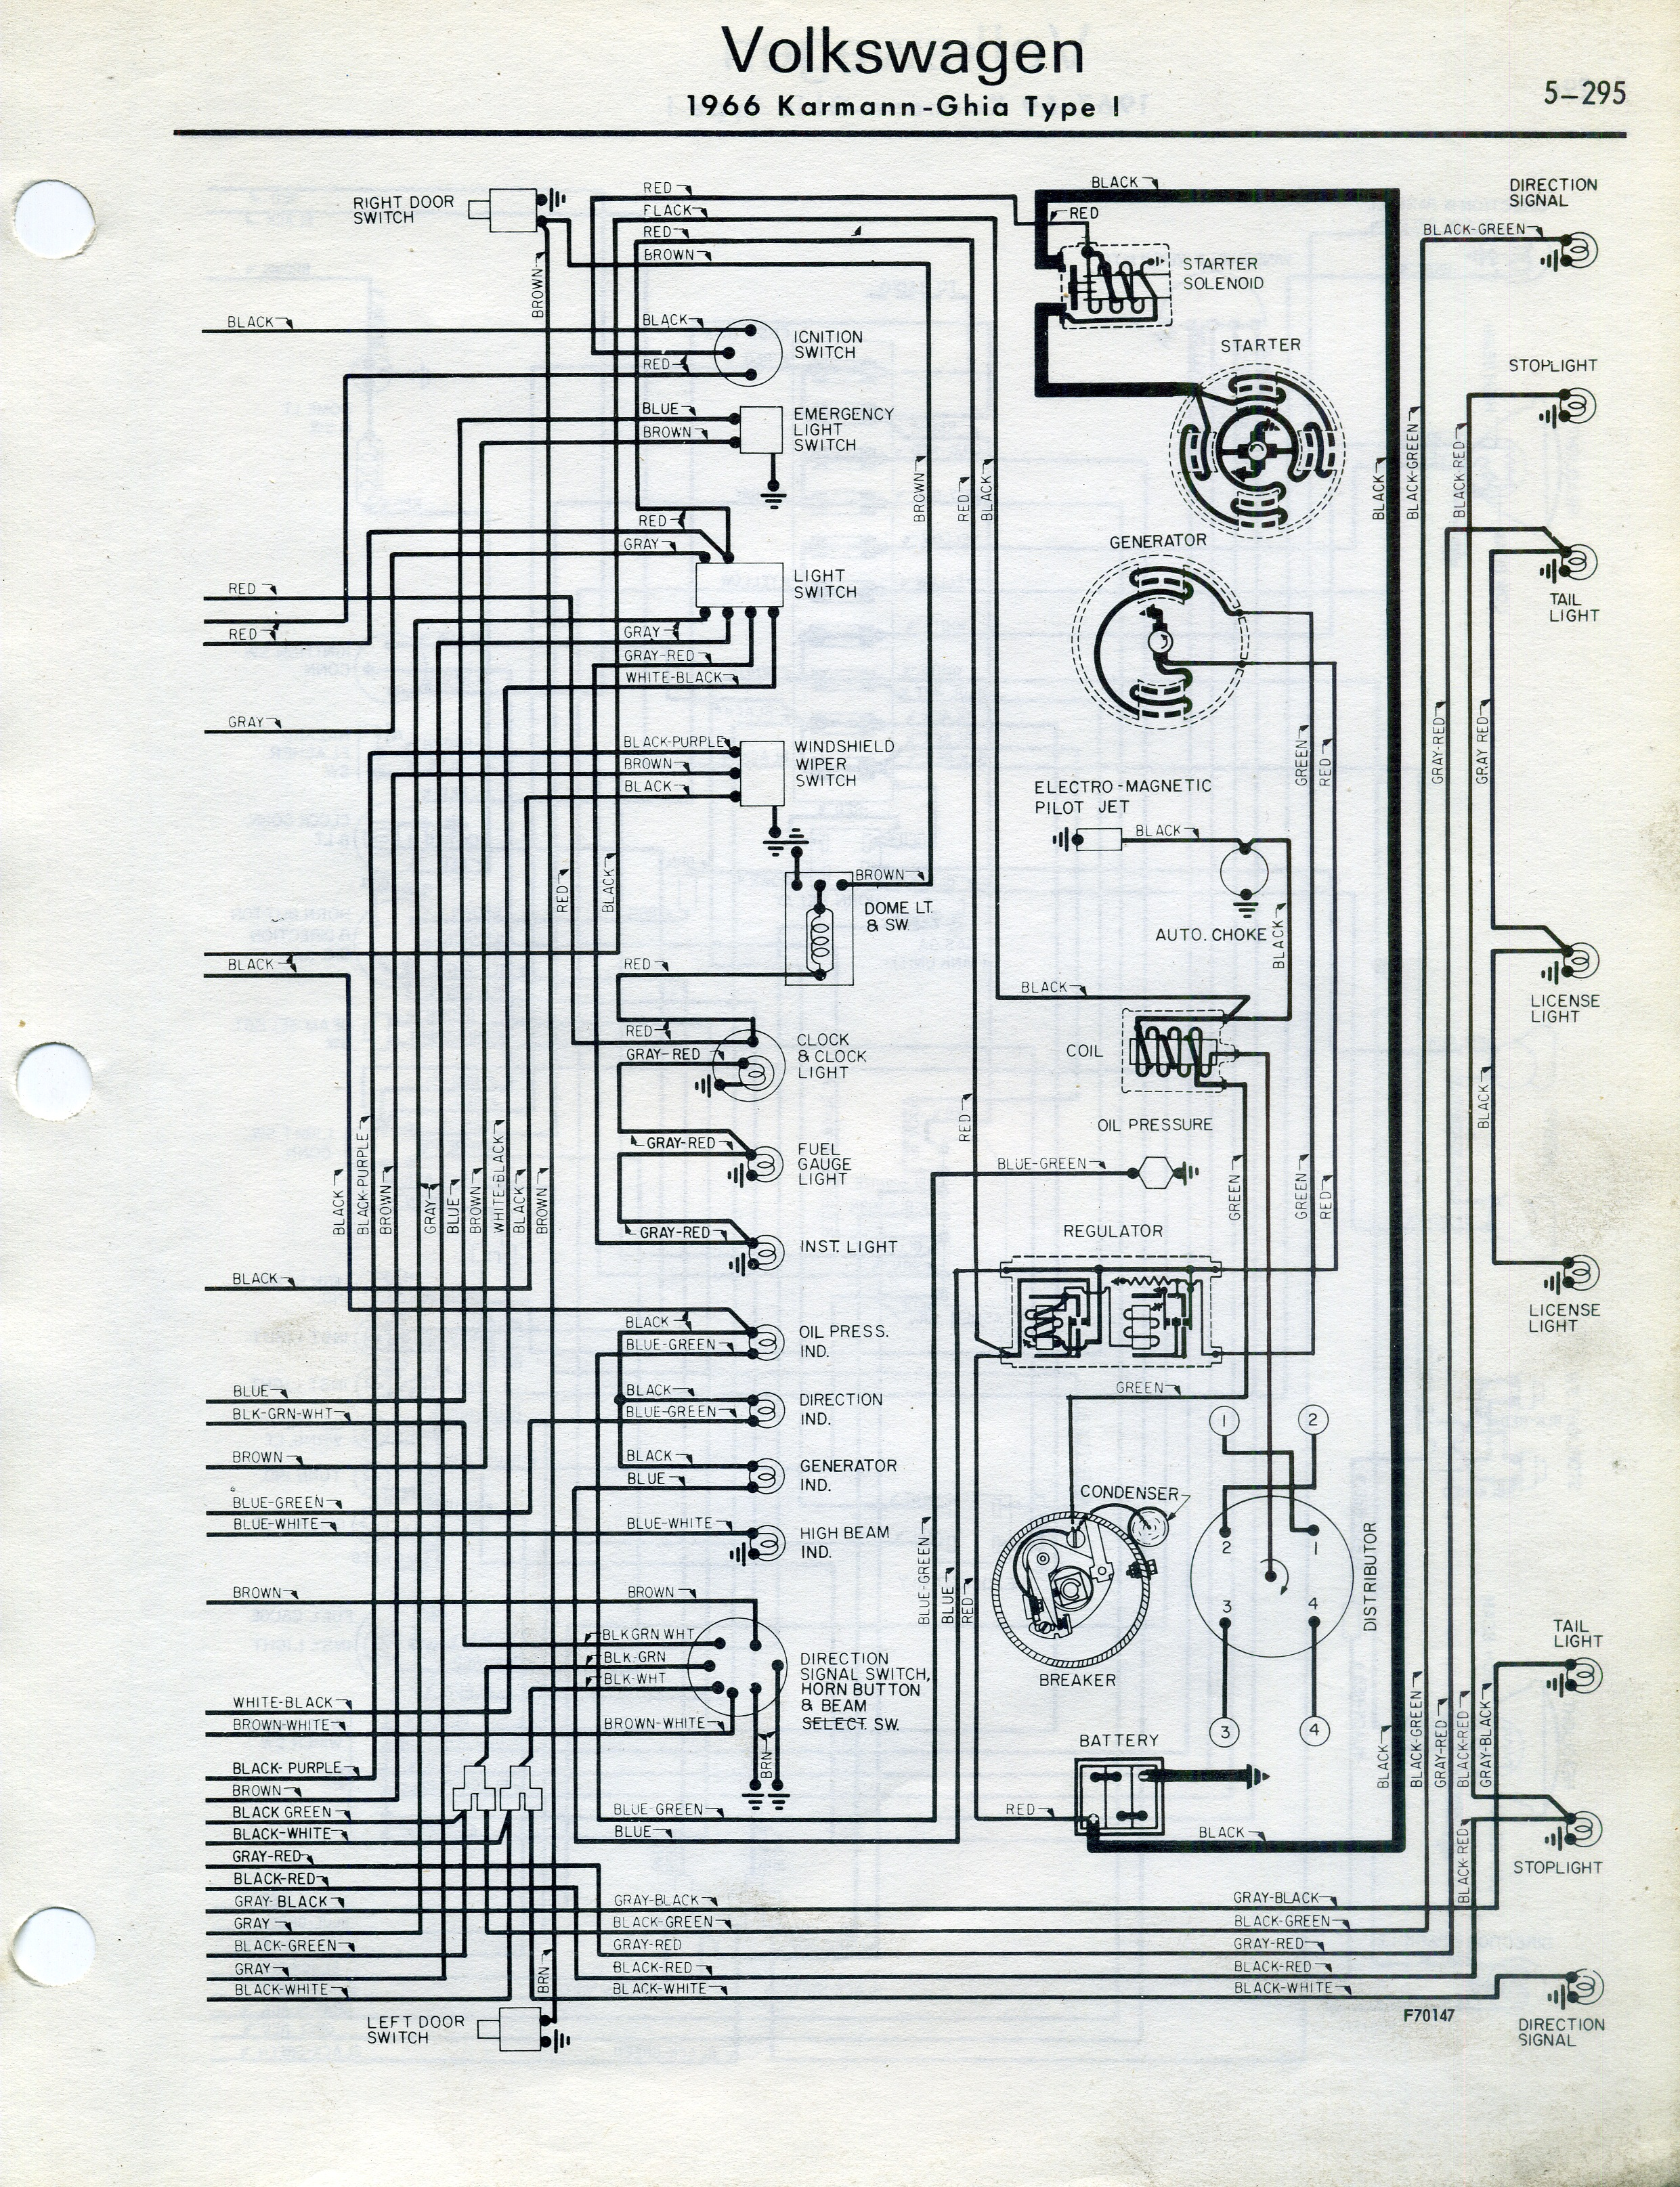 2000 Ford Explorer Wiring Diagram Pdf likewise Heater Ac 66005 besides 2009 Chevy Malibu Wiring Diagram together with 3dyk9 What S Tranny Type 2002 Buick Century 4t65e The moreover P 0996b43f8037eaeb. on chevy starter wire tube